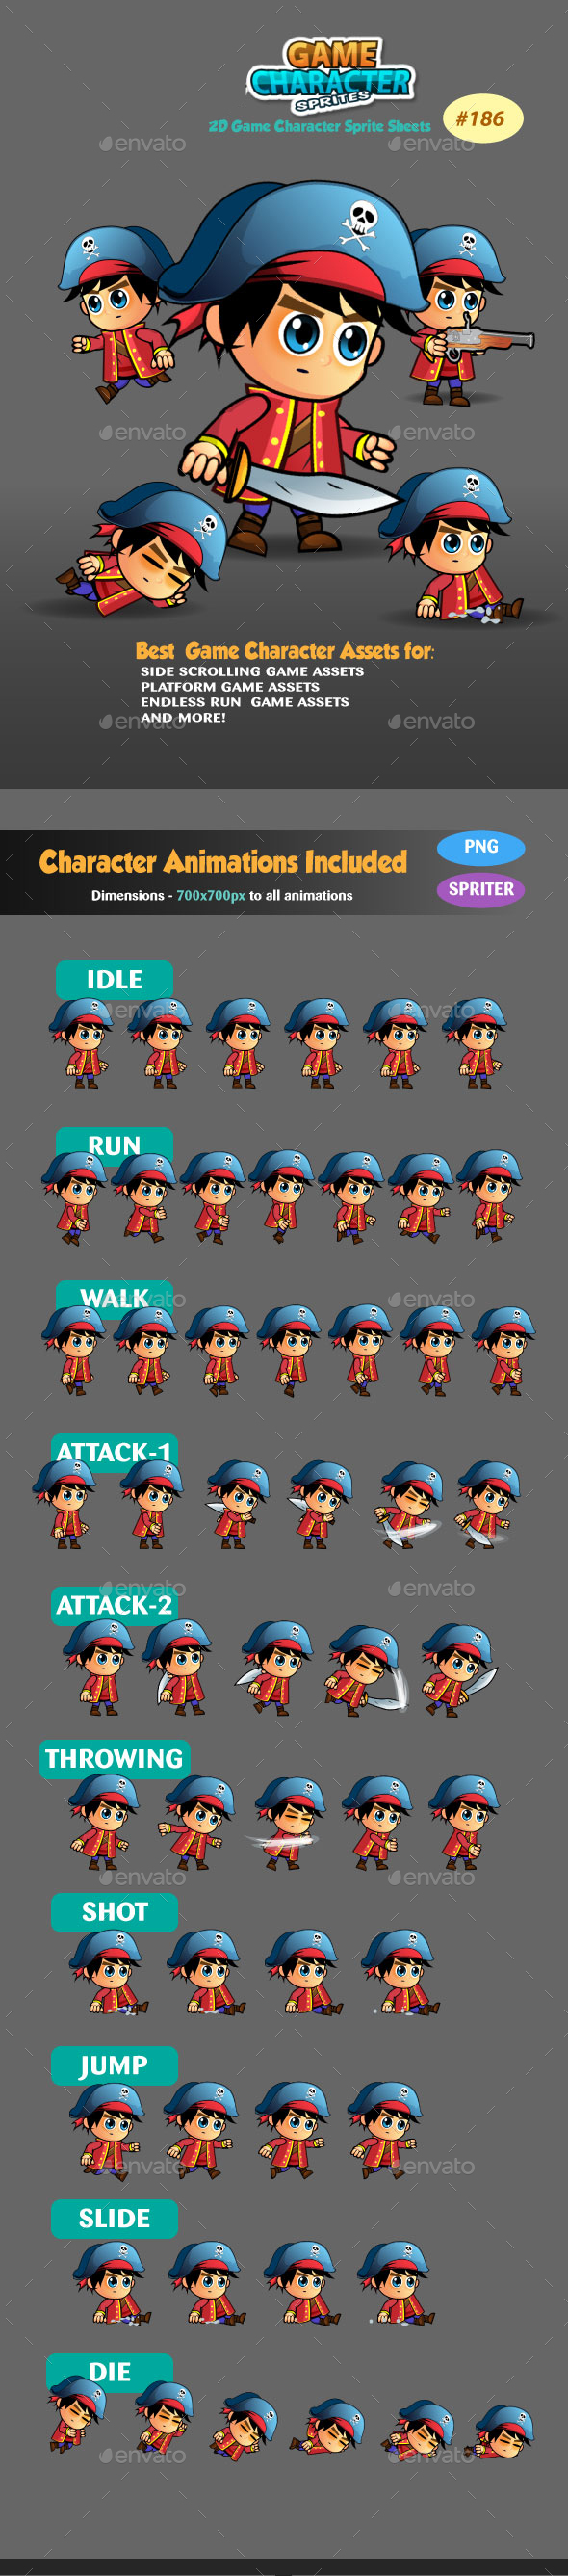 Pirate 2D Game Character Sprite Sheets 186 - Sprites Game Assets